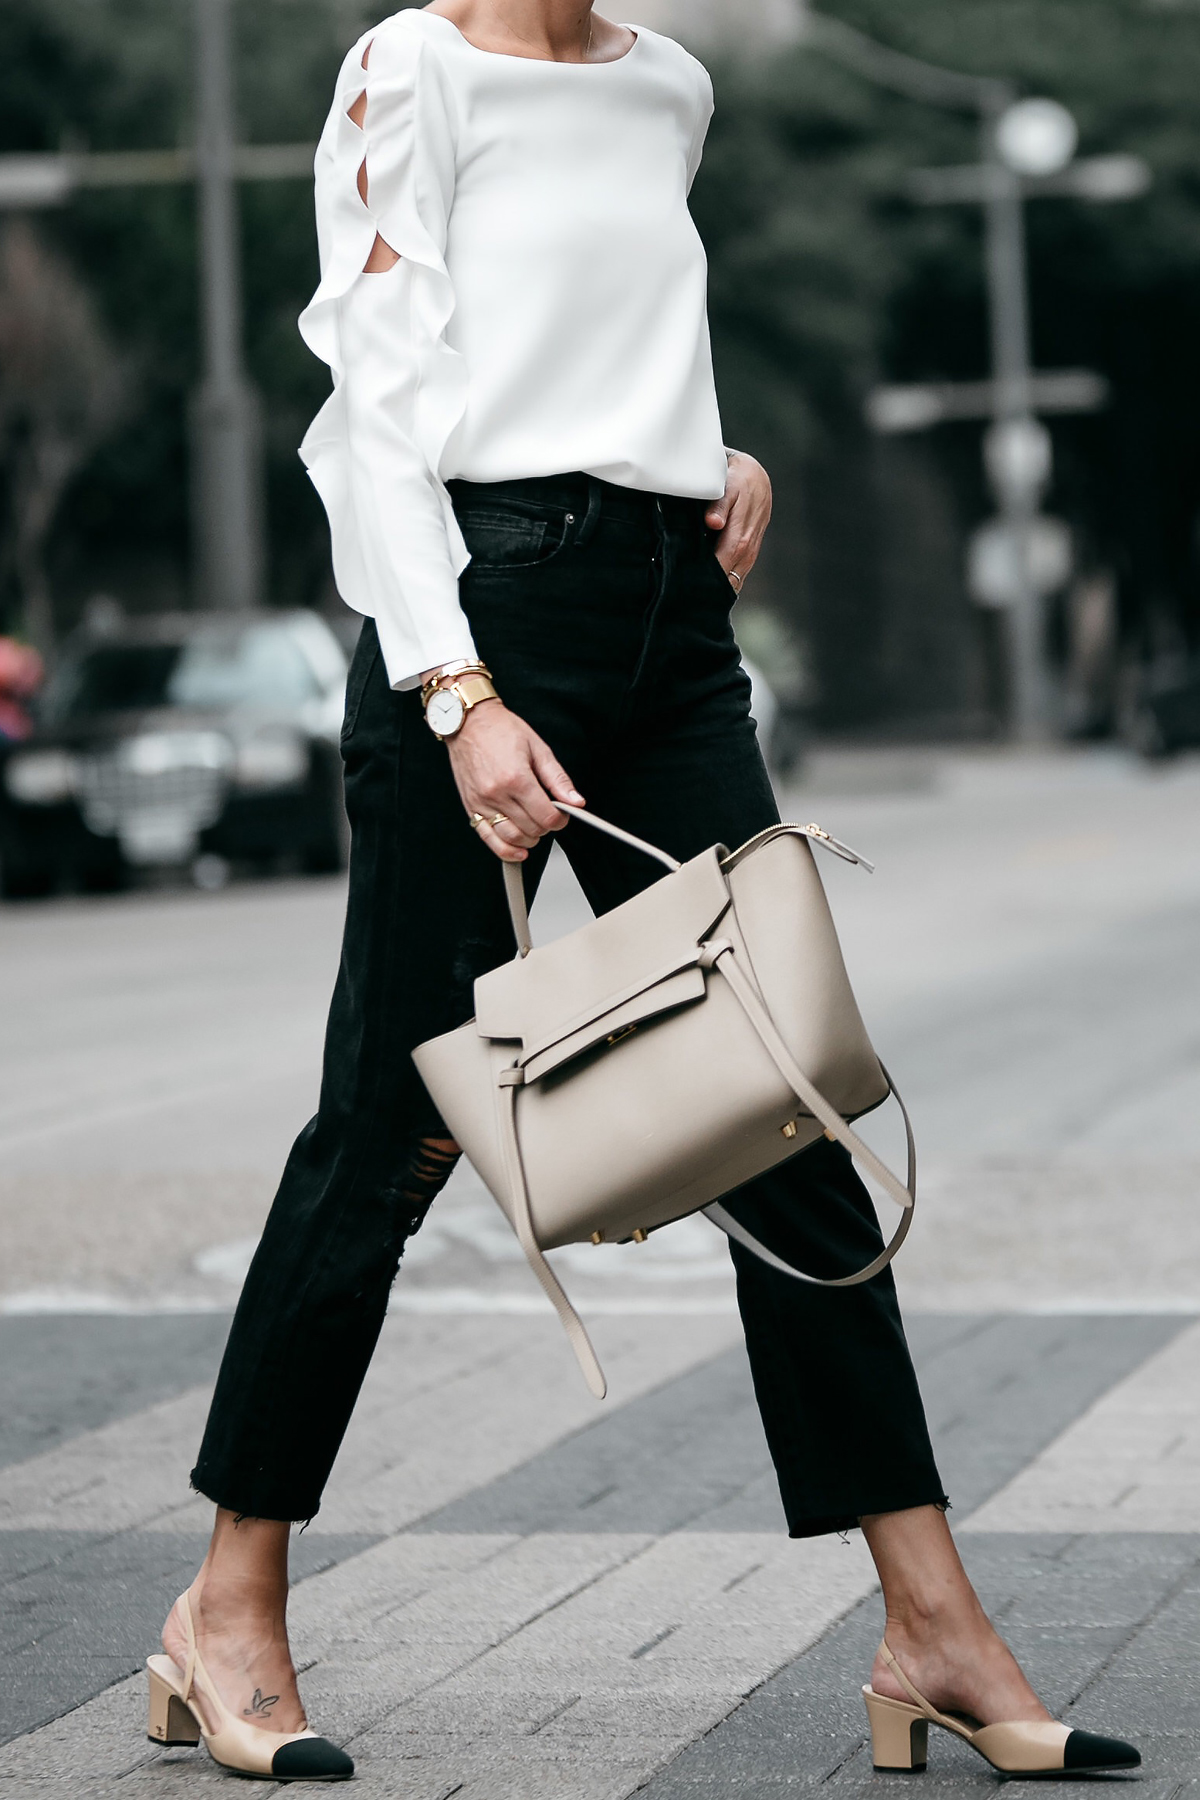 Club Monaco White Ruffle Sleeve Top Frame Black Ripped Boyfriend Jeans Outfit Celine Belt Bag Chanel Slingbacks Fashion Jackson Dallas Blogger Fashion Blogger Street Style